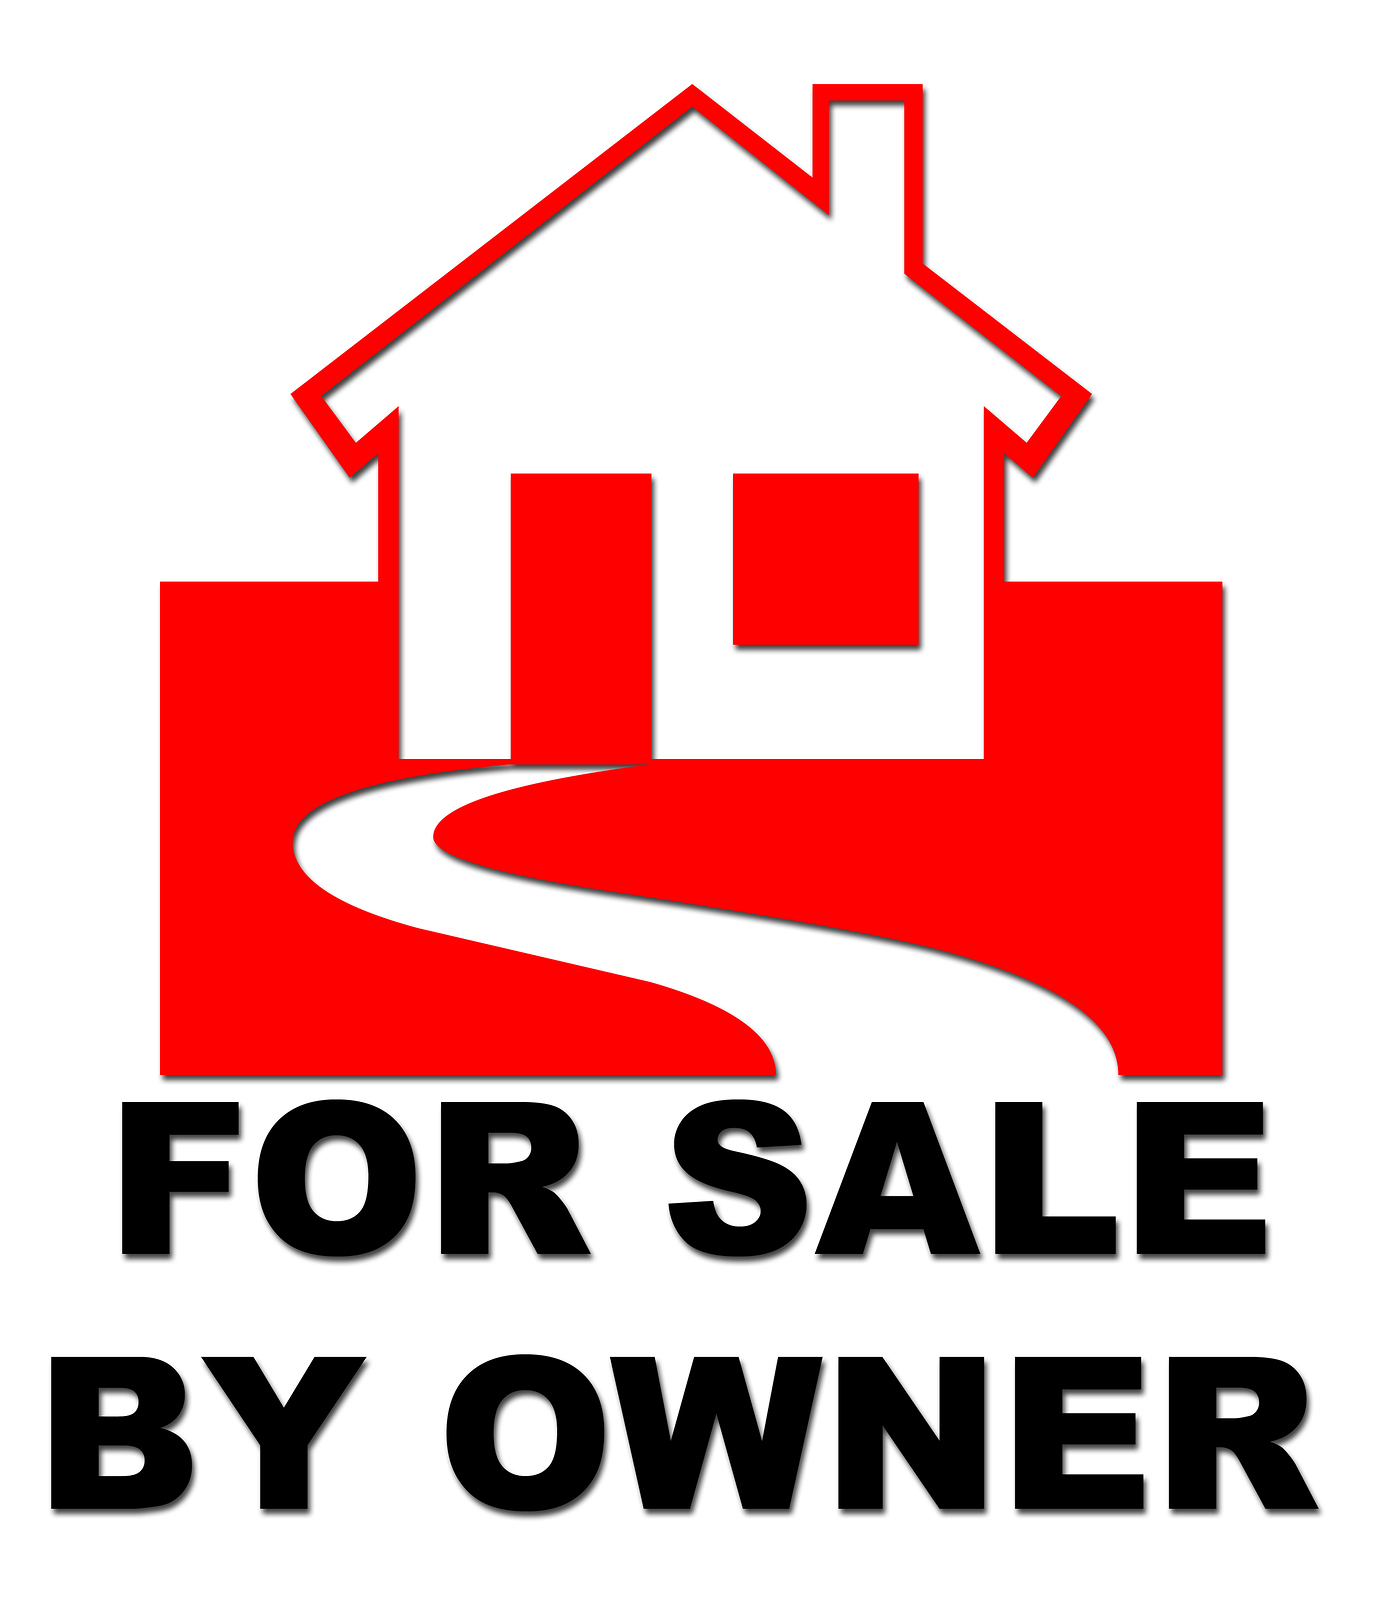 owner fsbo sign sell tips sold helpful checklist selling yourself realtor leads homes forsalebyowner advice information put track keep should